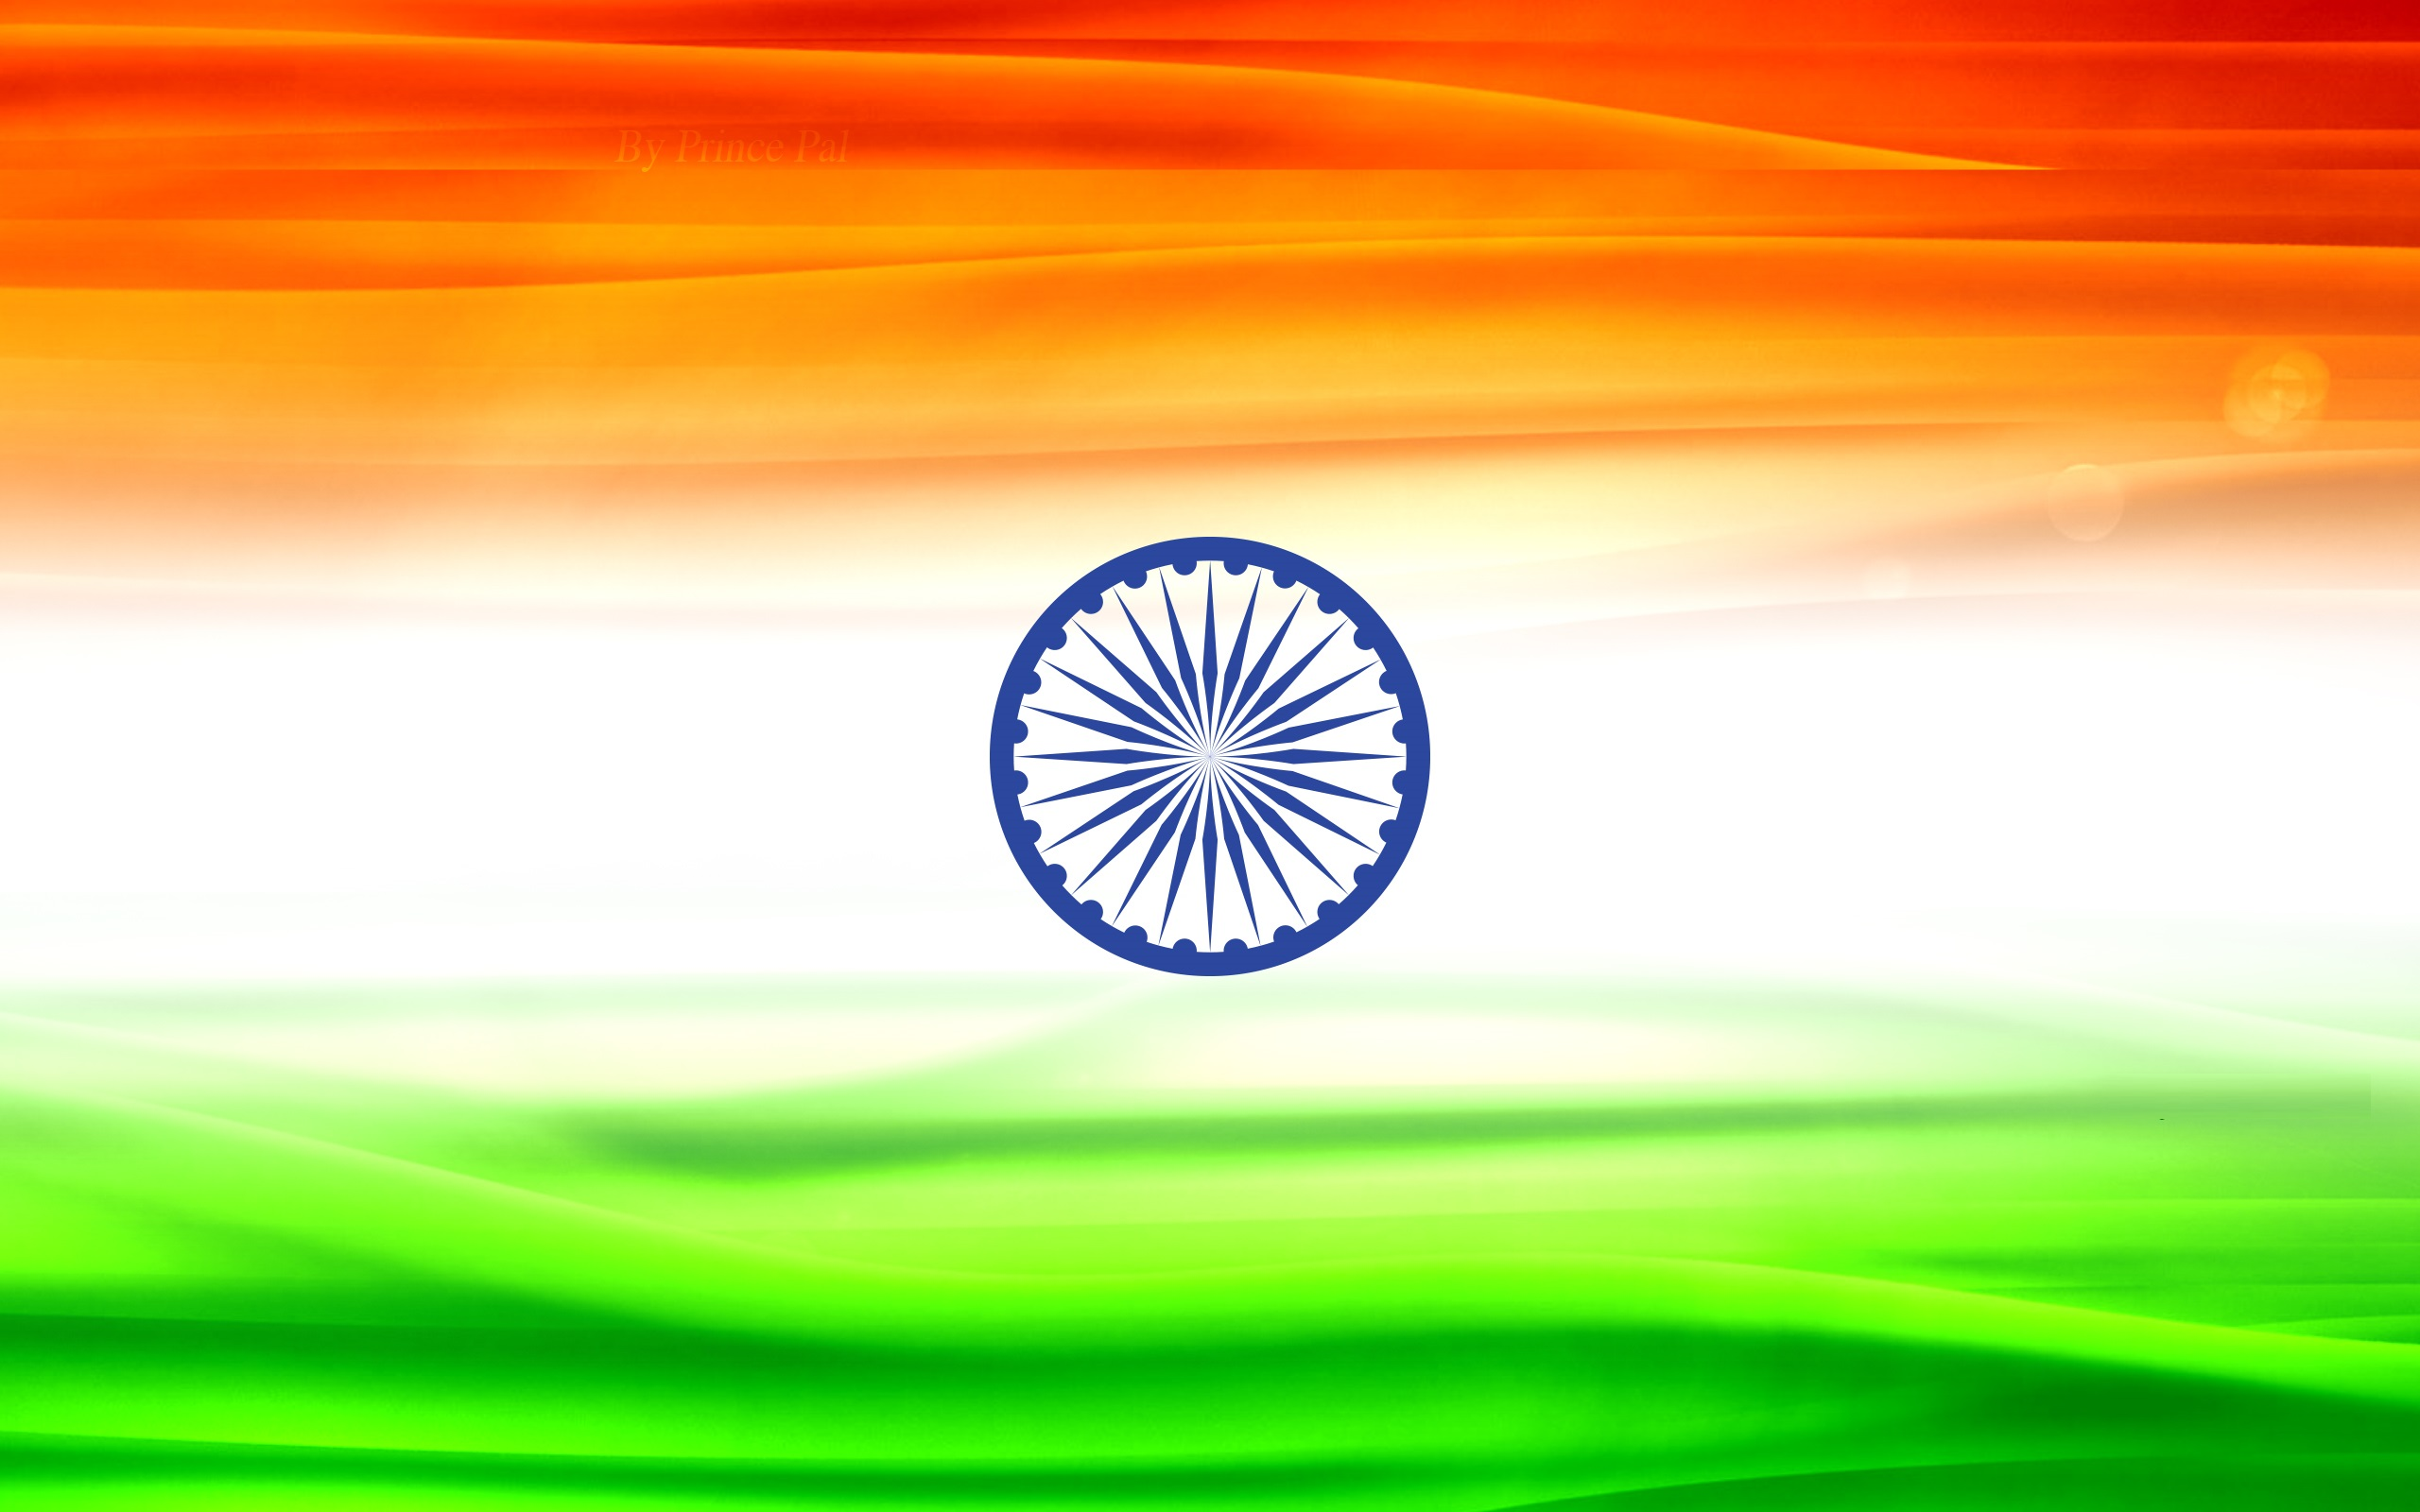 Indian Flag Wallpapers HD Images  Download 3 2560x1600